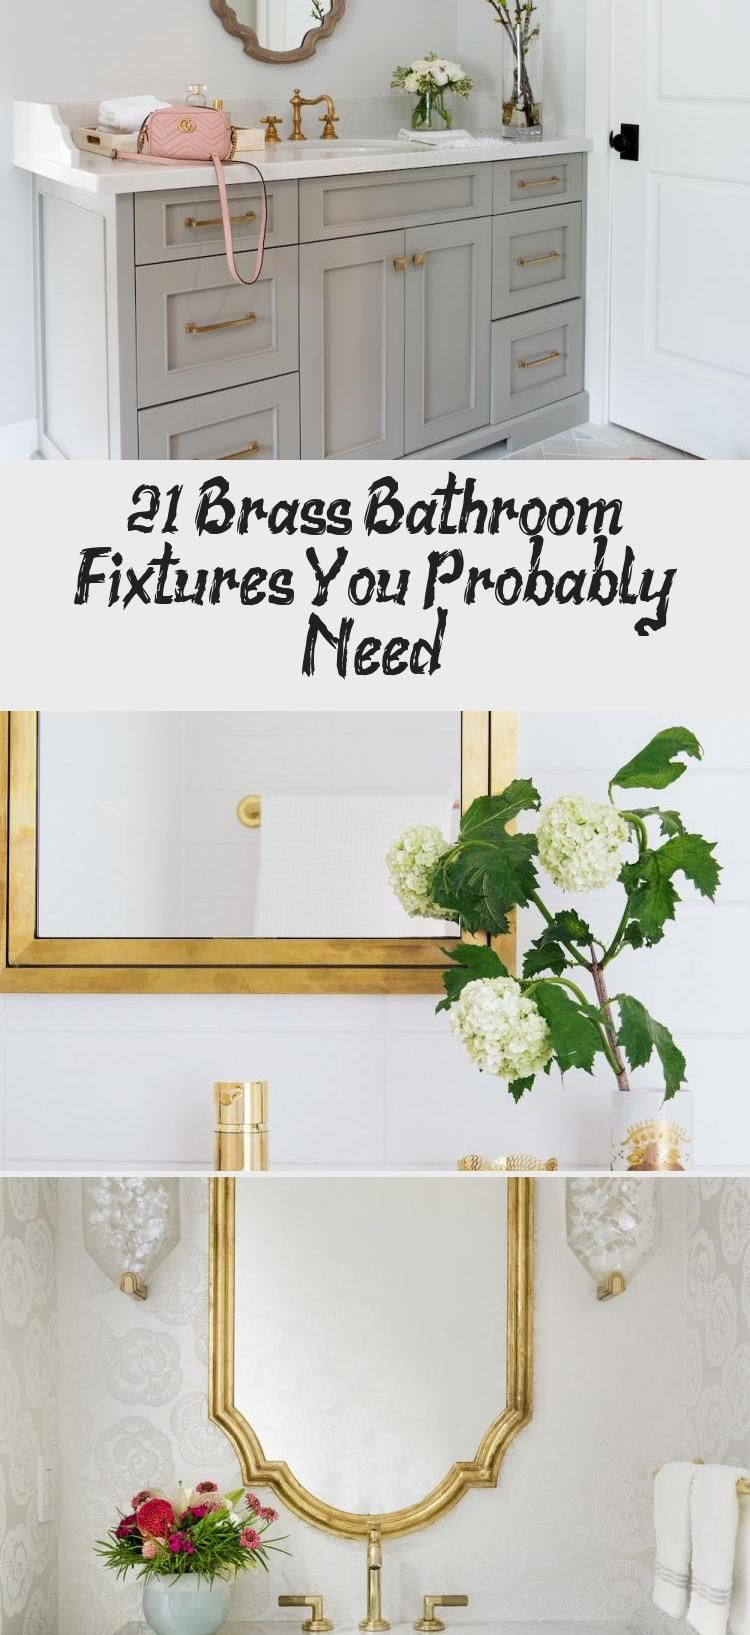 Photo of 21 Brass Bathroom Fixtures You Probably Need – Home Decoration